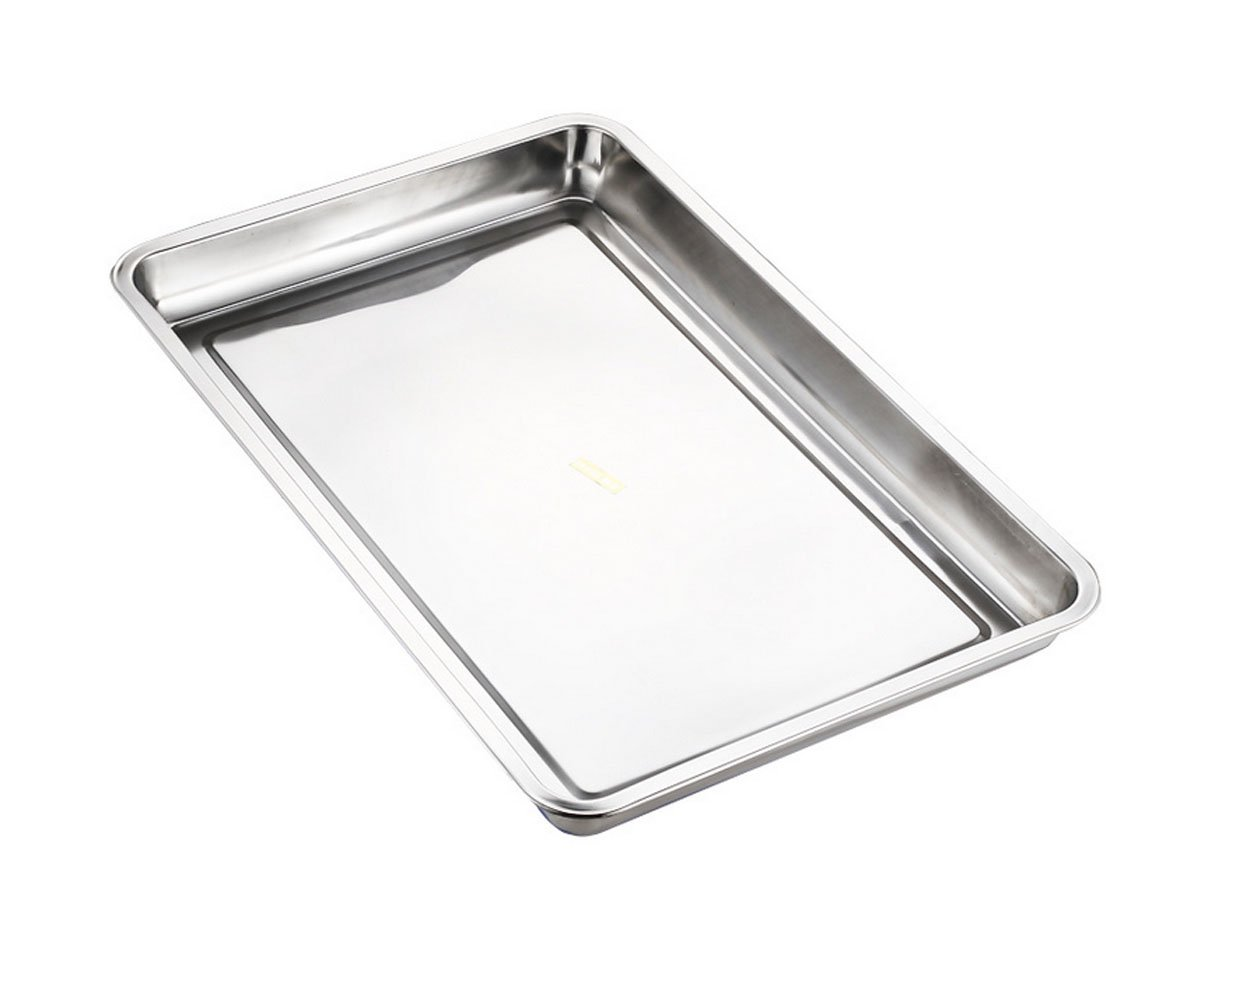 Lianzhi Hotel And Catering Business Stainless Steel Baking Pan Half Thickness 0f 0.5MM (10.63*14.70*0.79) by Lianzhi